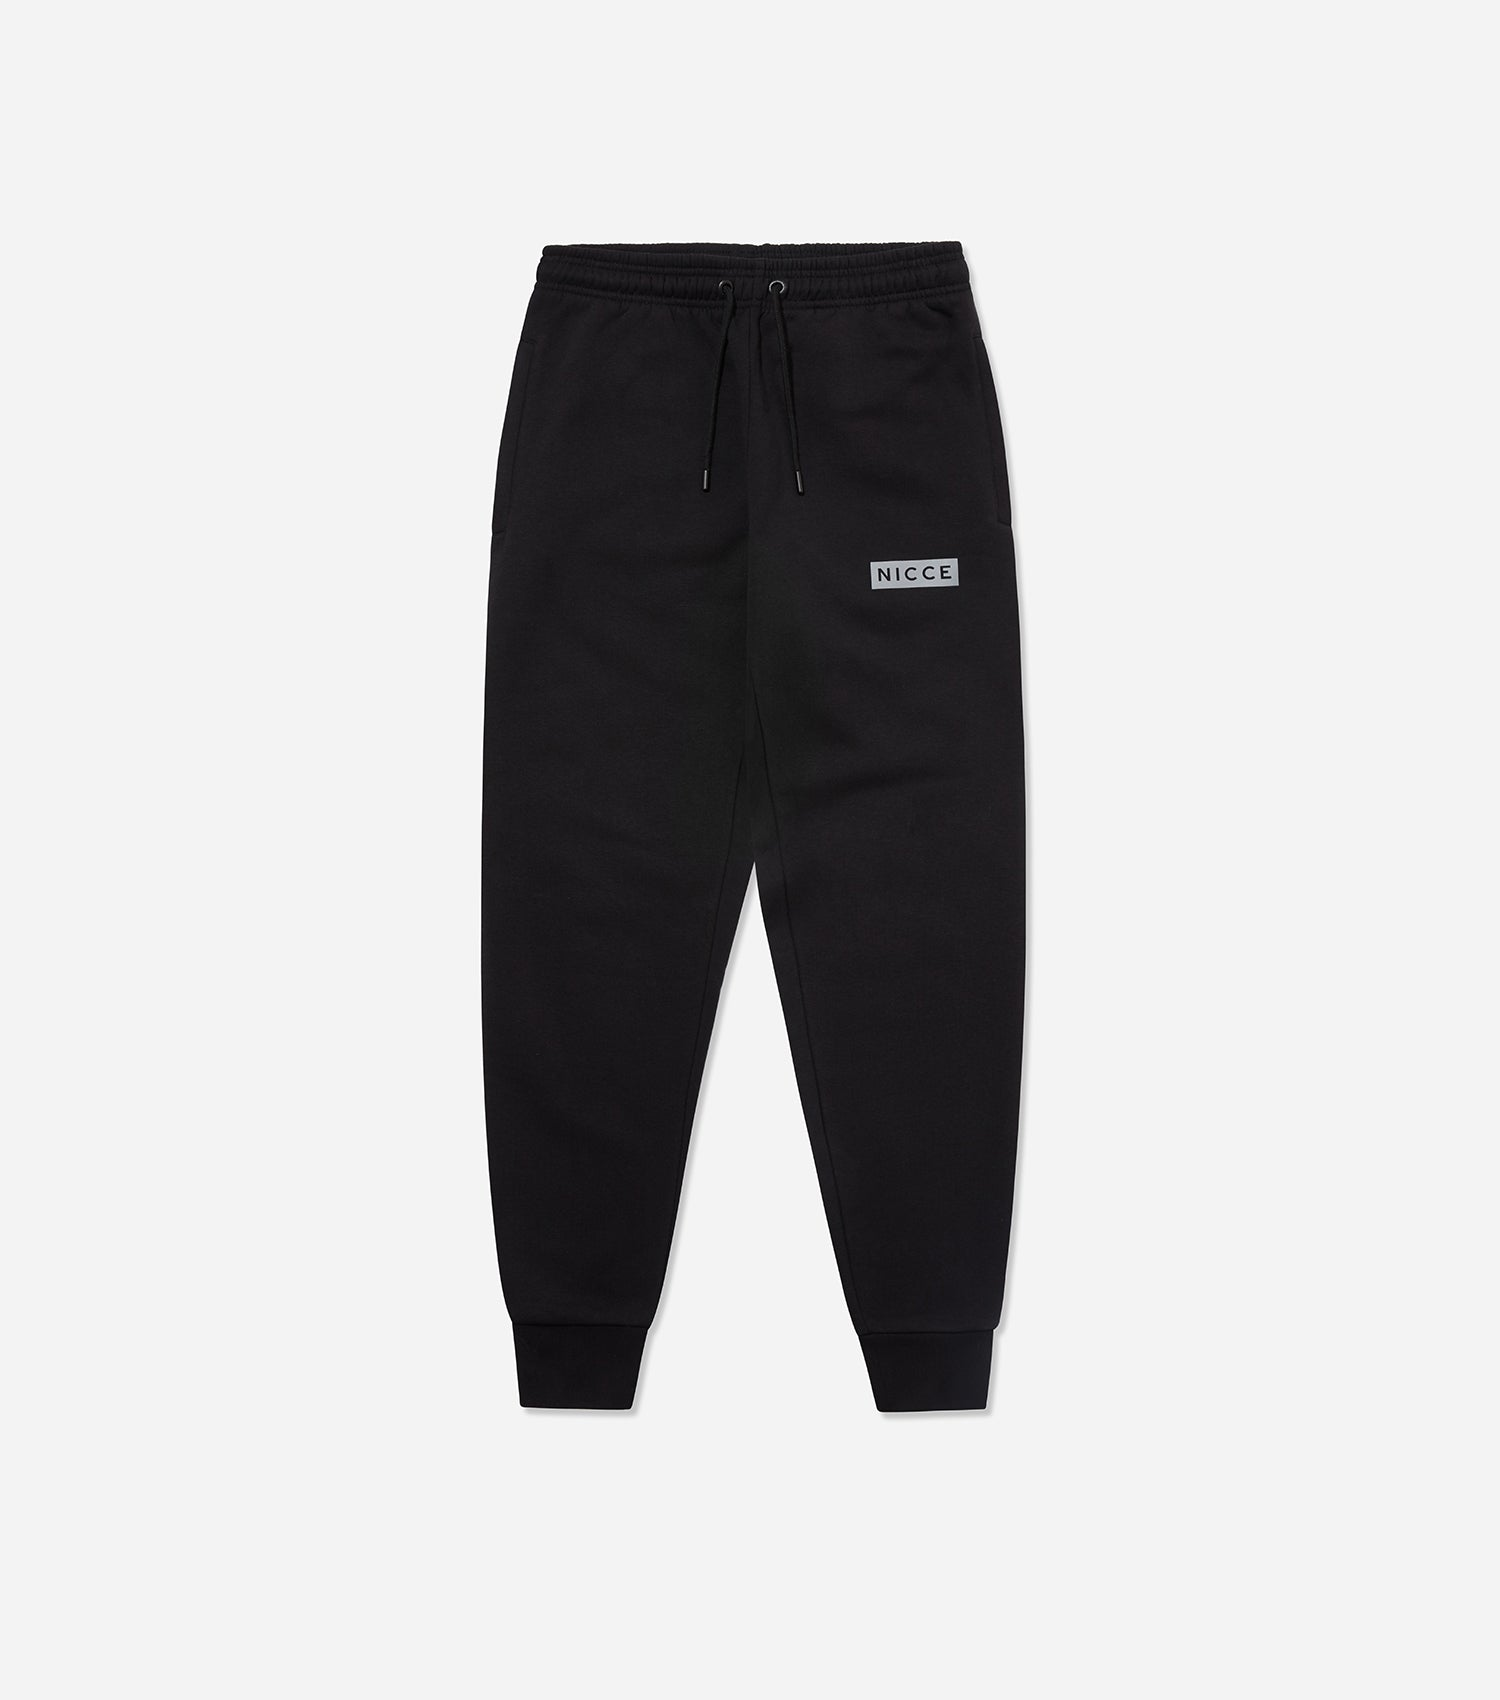 NICCE Mens Reflective Base Joggers | Black, Joggers